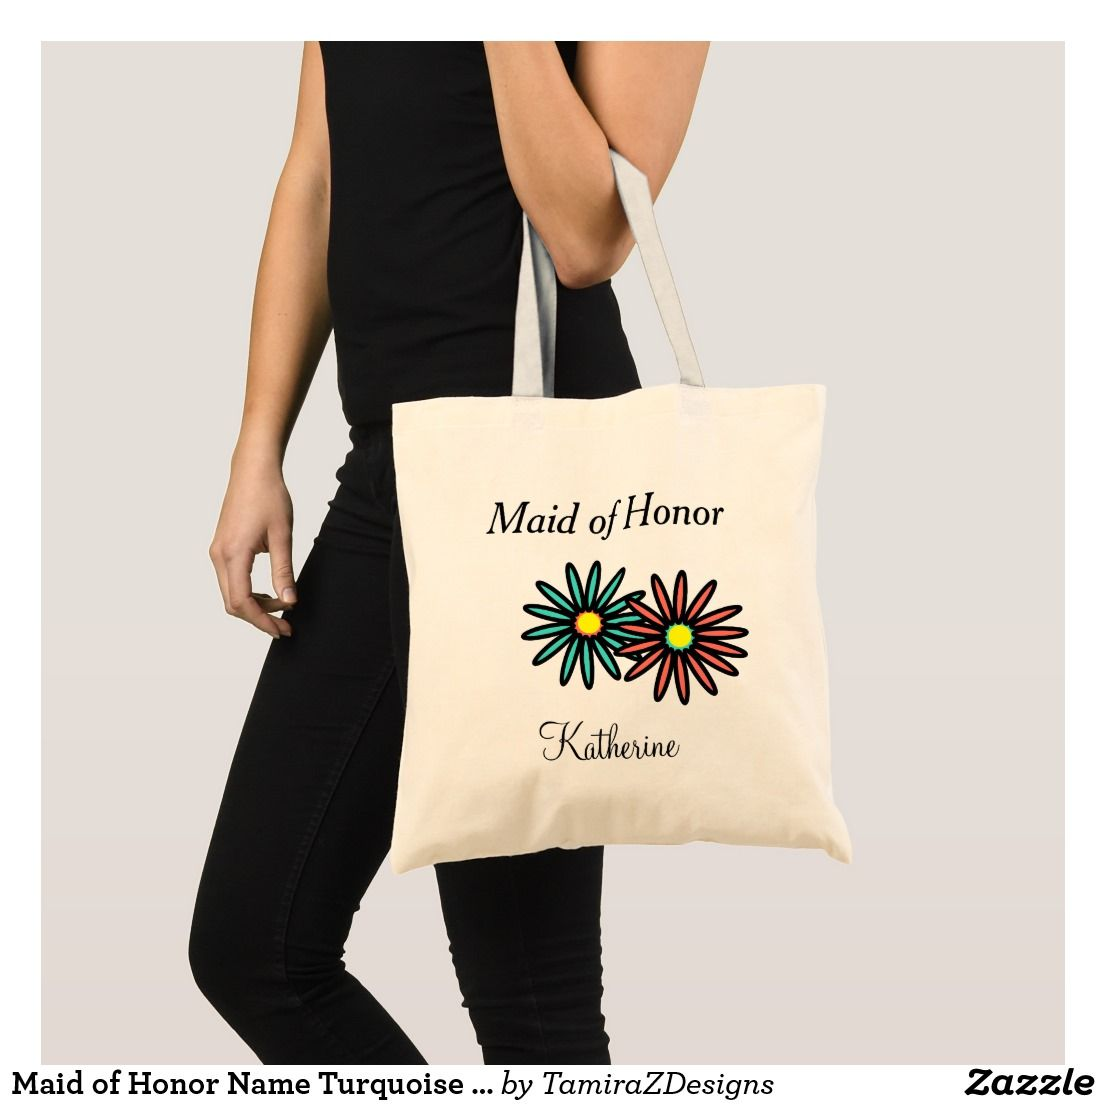 Maid of Honor Name Turquoise Coral Flowers Tote Bag | Zazzle.com